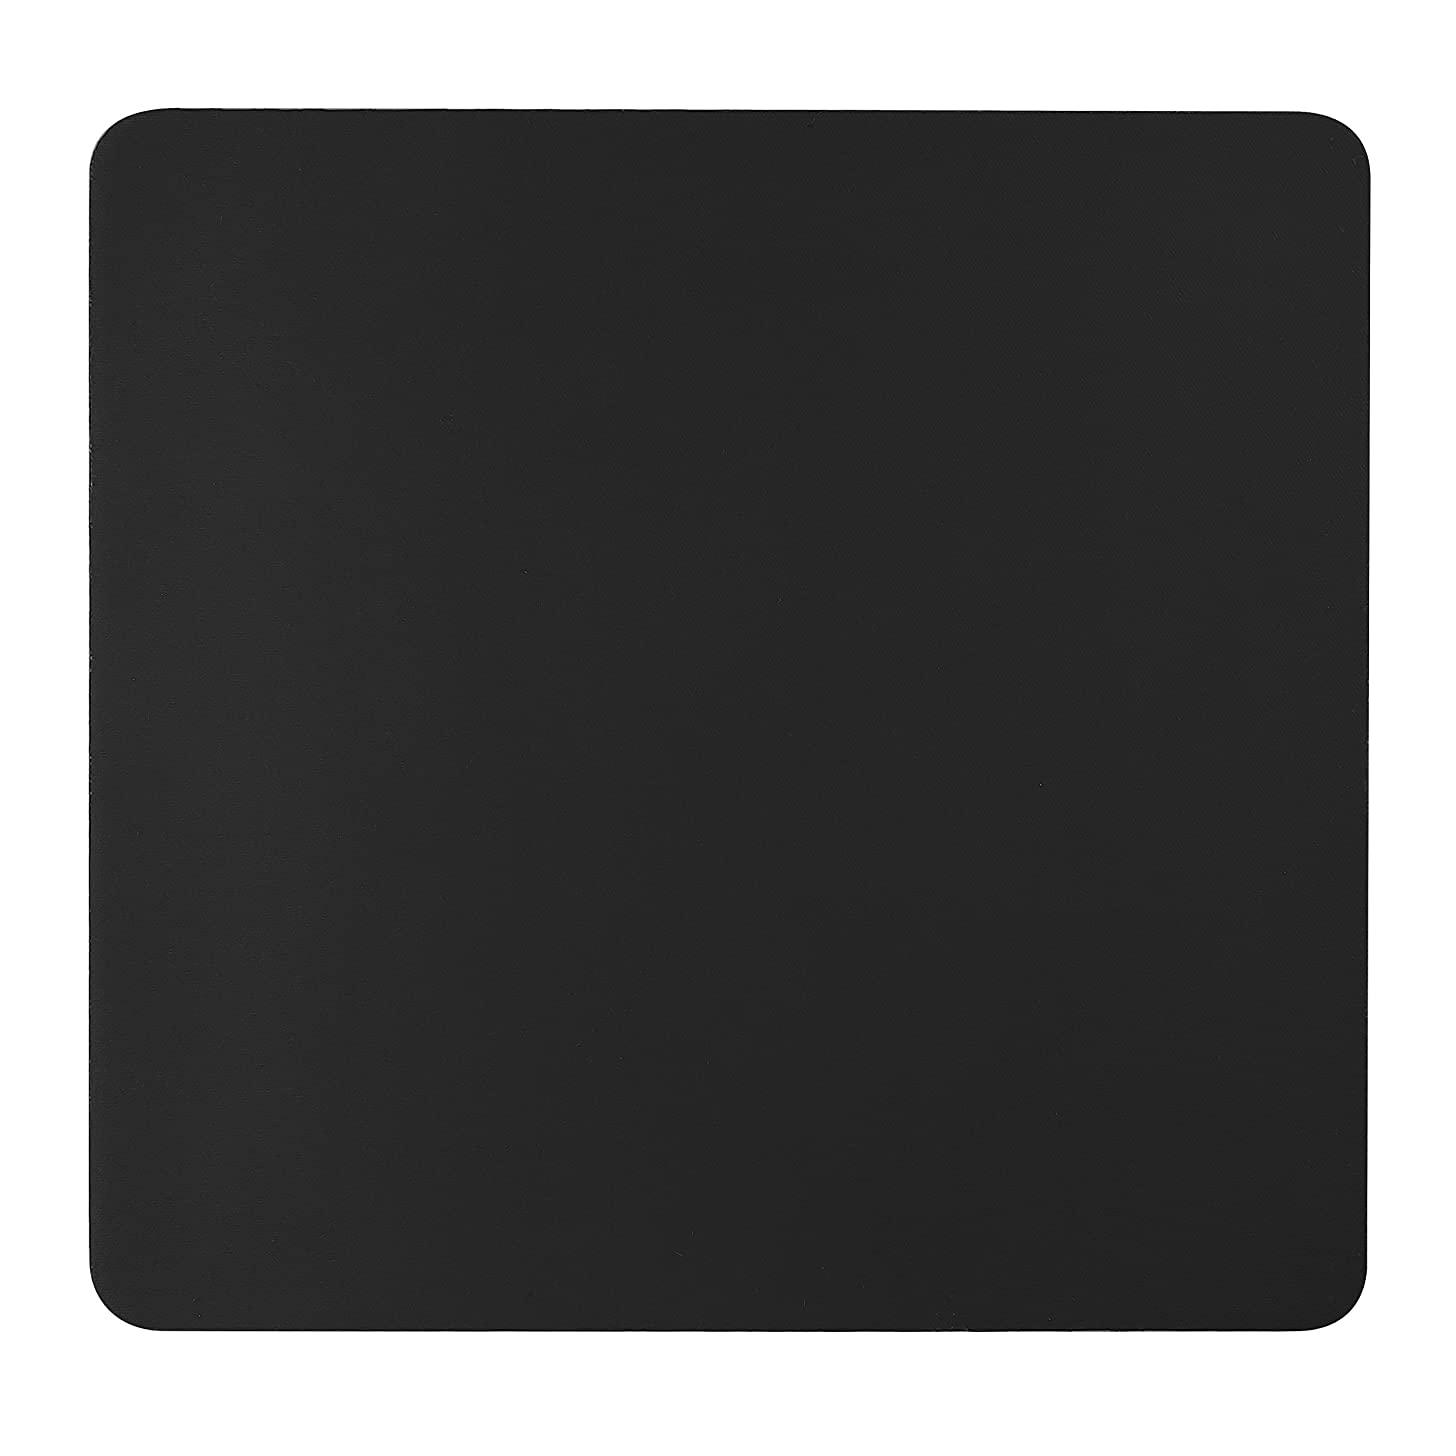 Quality Selection Comfortable Mouse Pad (Black)